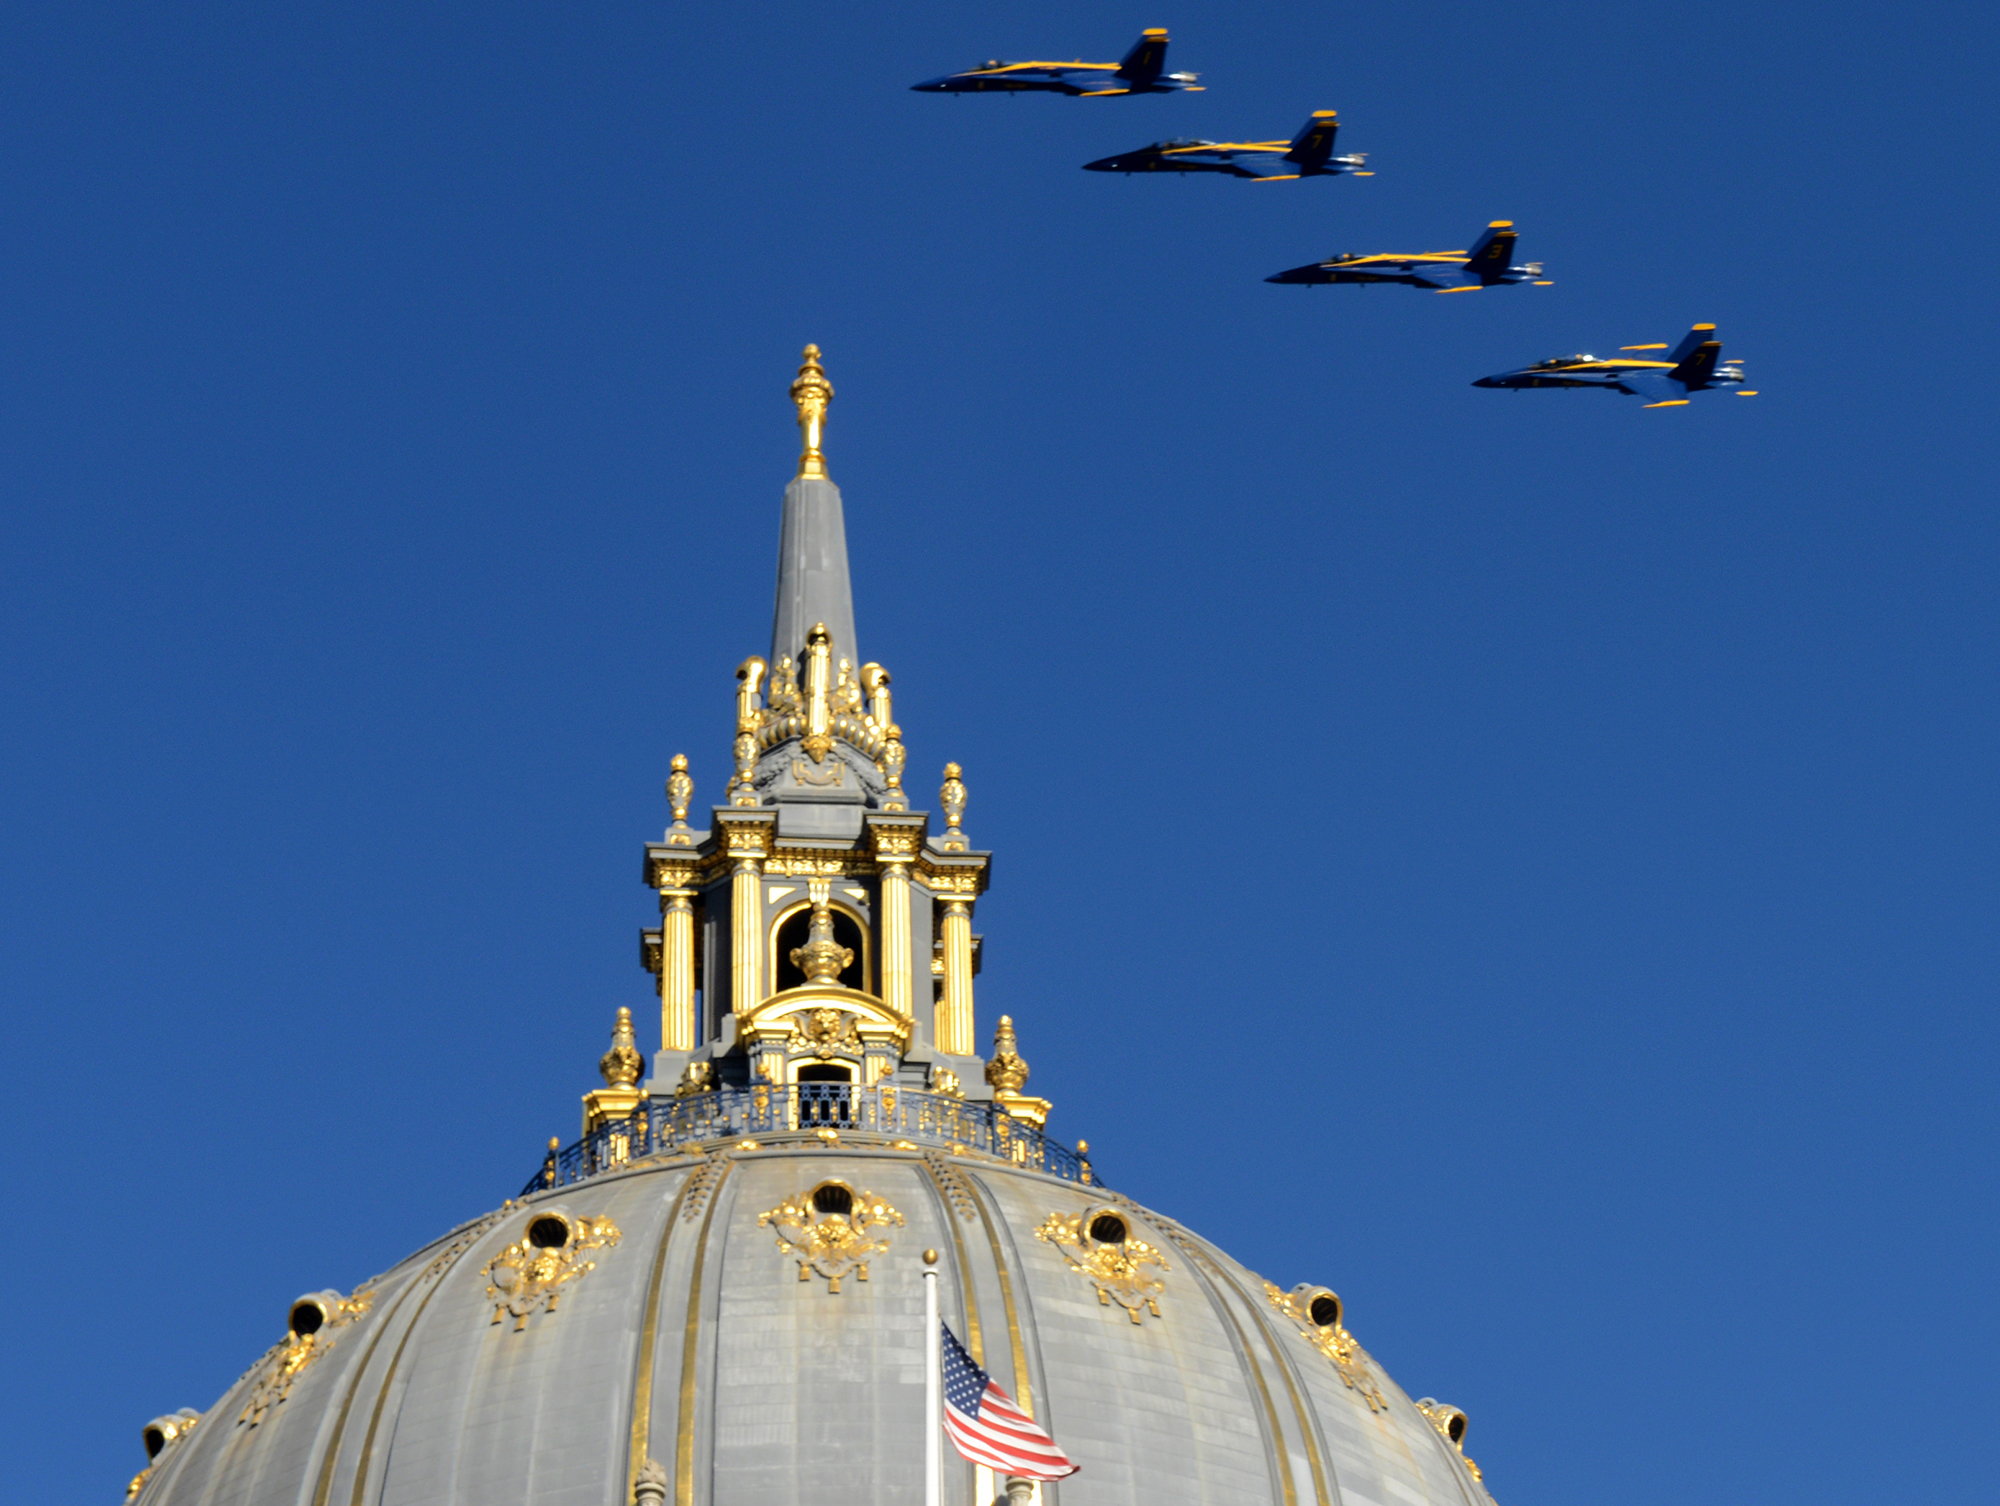 The U.S. Navy Blue Angels fly over City Hall in San Francisco, Ca. on Thursday, October 6, 2016 during a survey run of the city before they perform for the city on Friday and Saturday during Fleet Week. Photo by David Andrews.